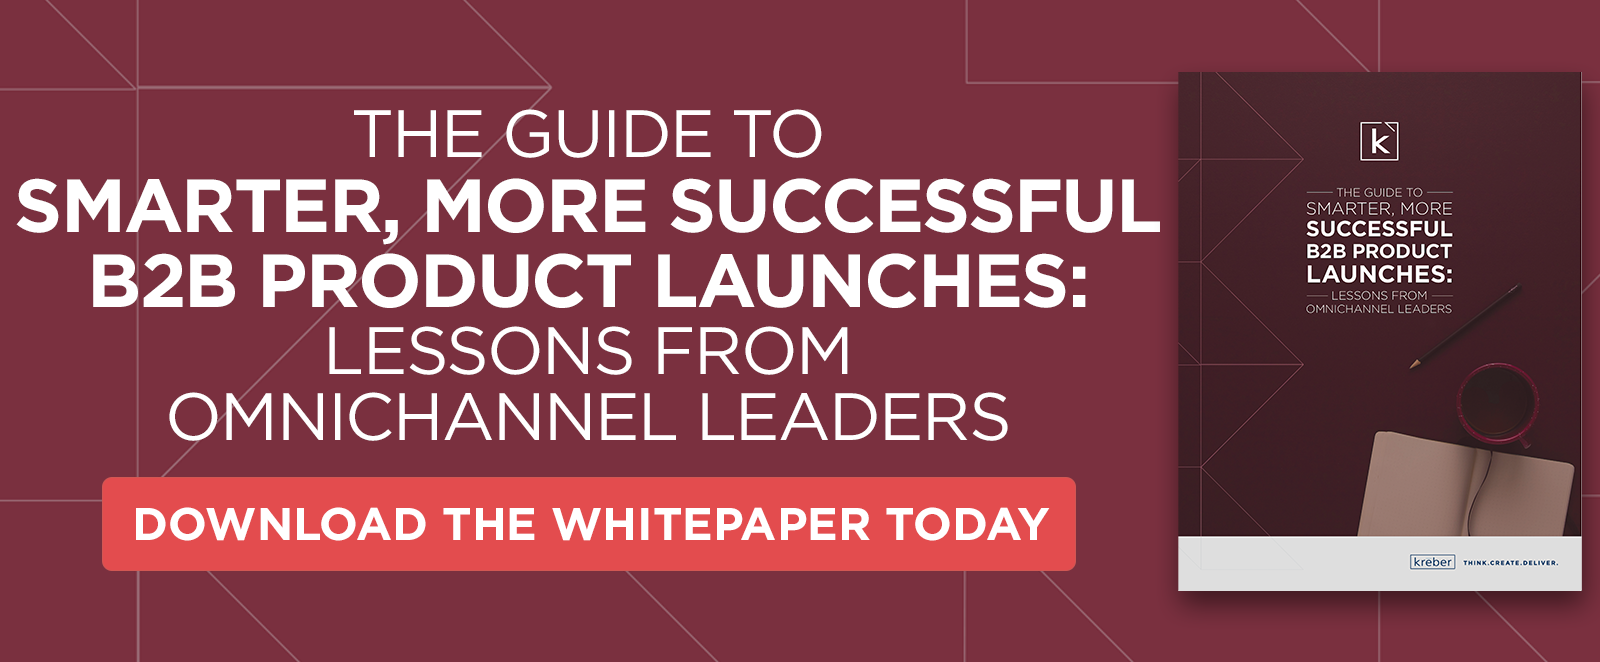 b2b-product-launch-white-paper-cta